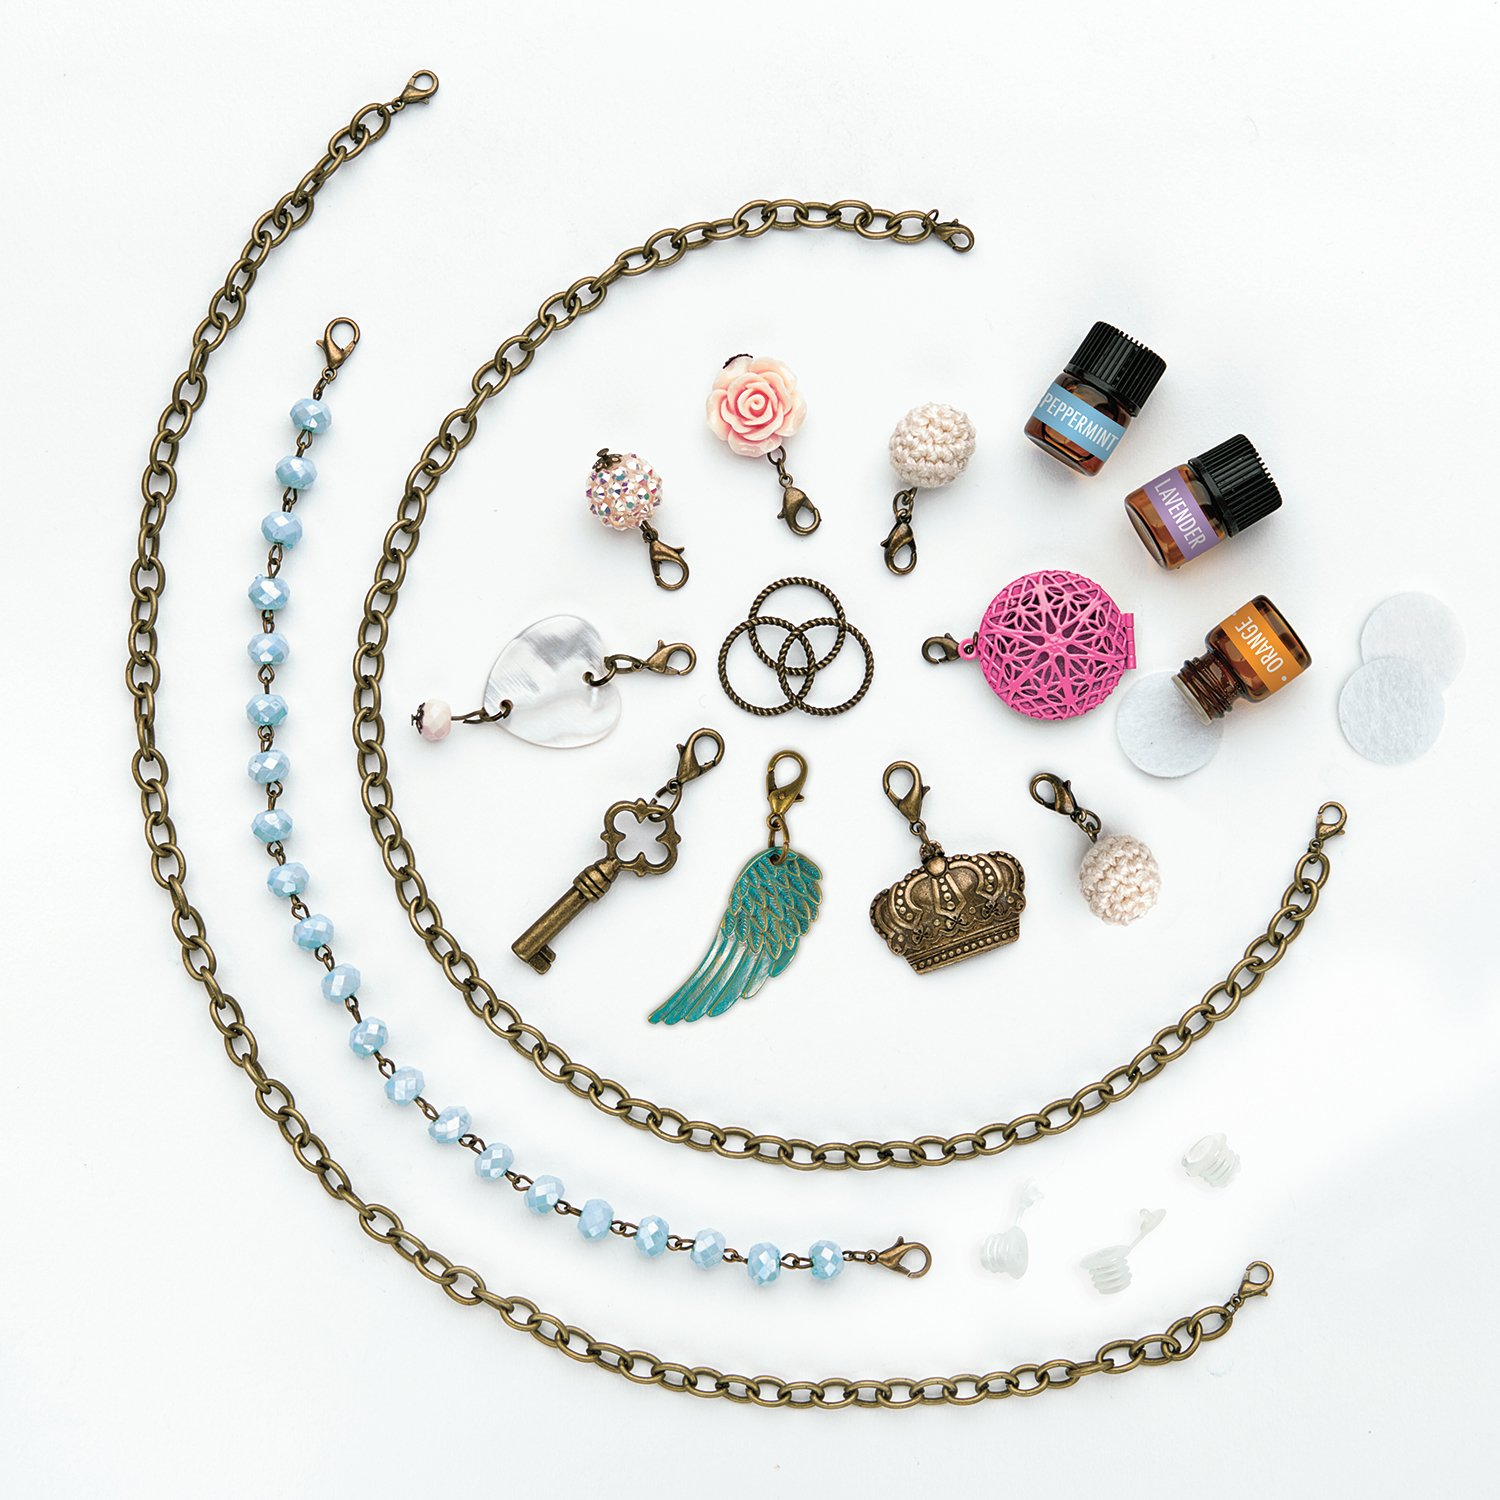 CRAFTIVITY AromaJewelry Lovely Lockets - Essential Oil Jewelry Making Kit by CRAFTIVITY (Image #3)